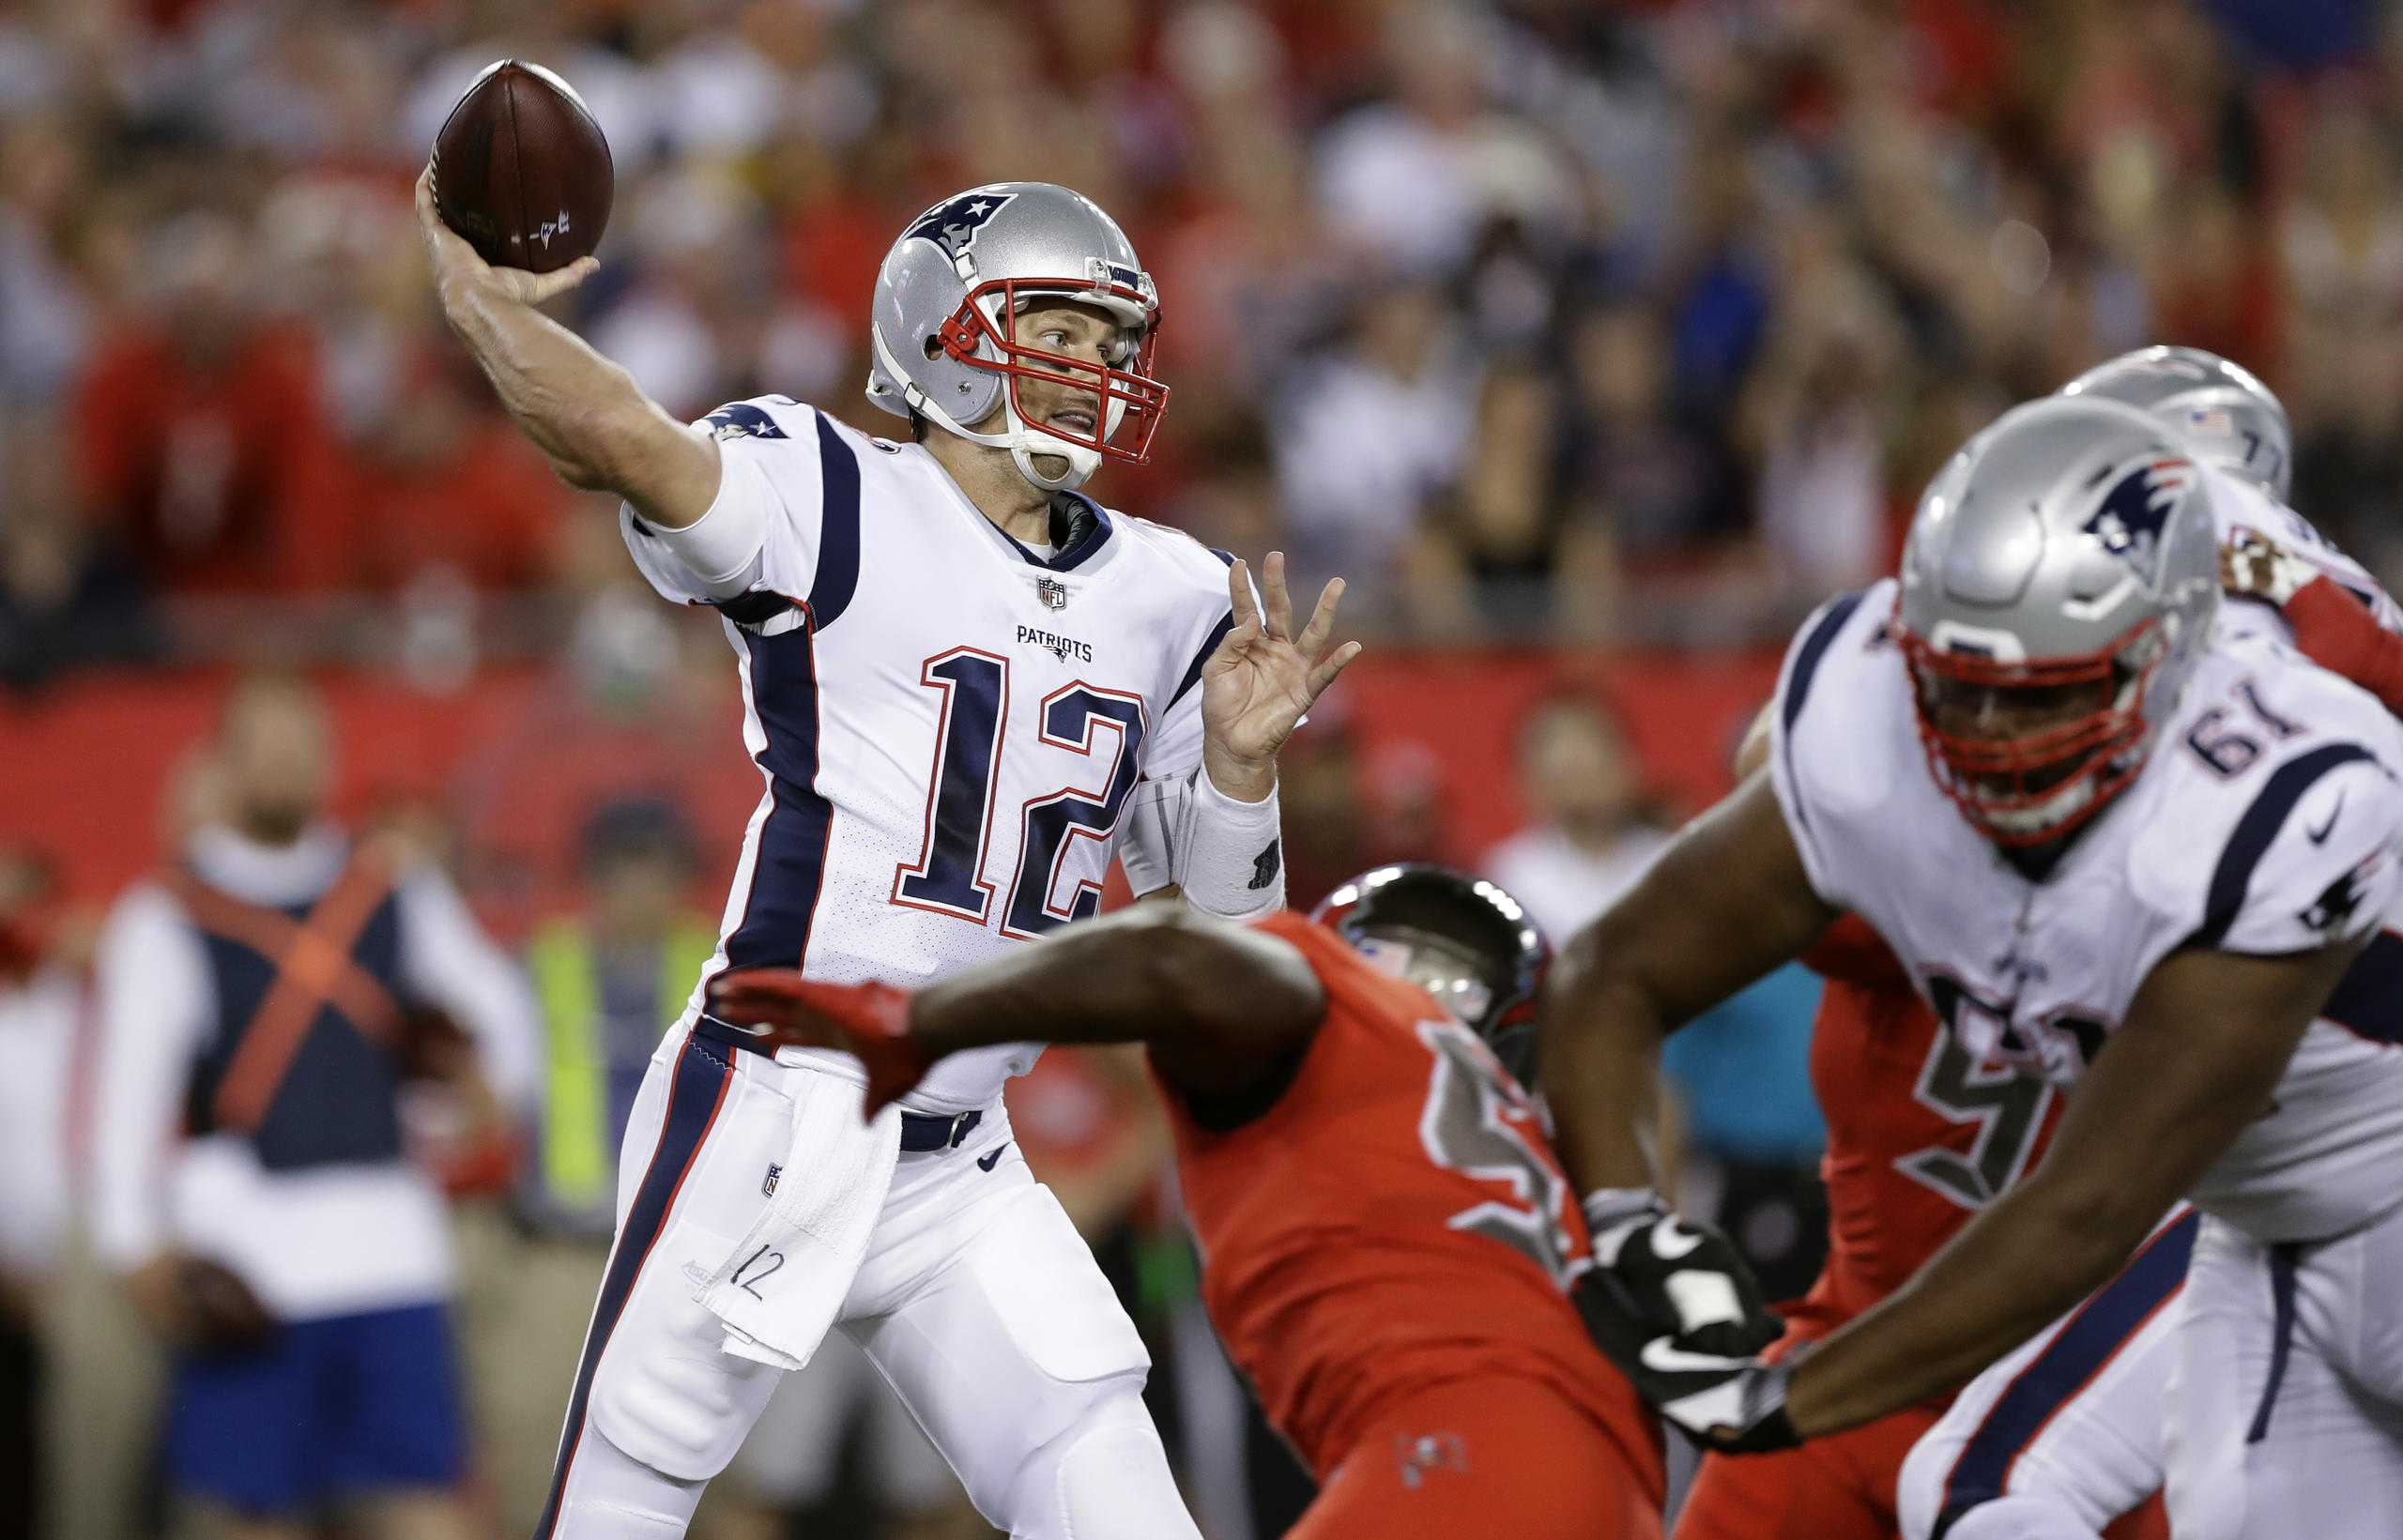 Tom Brady will play Sunday despite shoulder injury